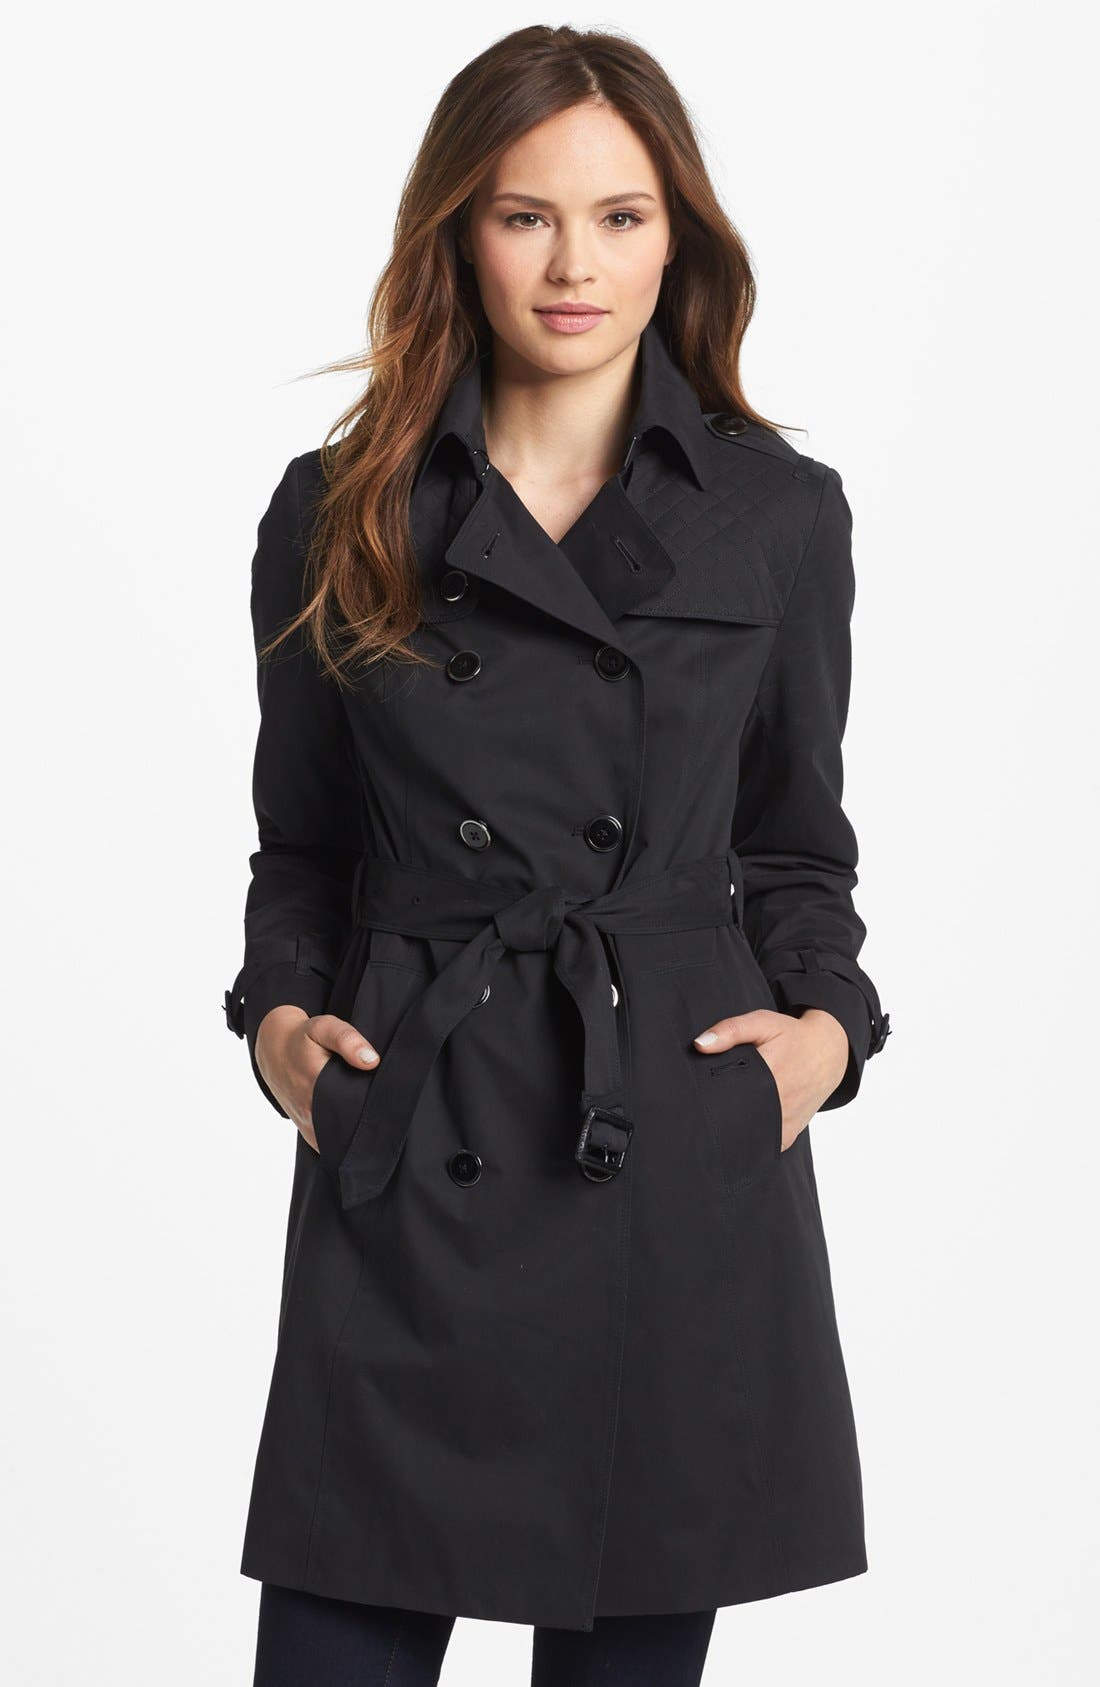 Main Image - London Fog Quilted Flap Double Breasted Trench Coat (Regular & Petite) (Online Only)